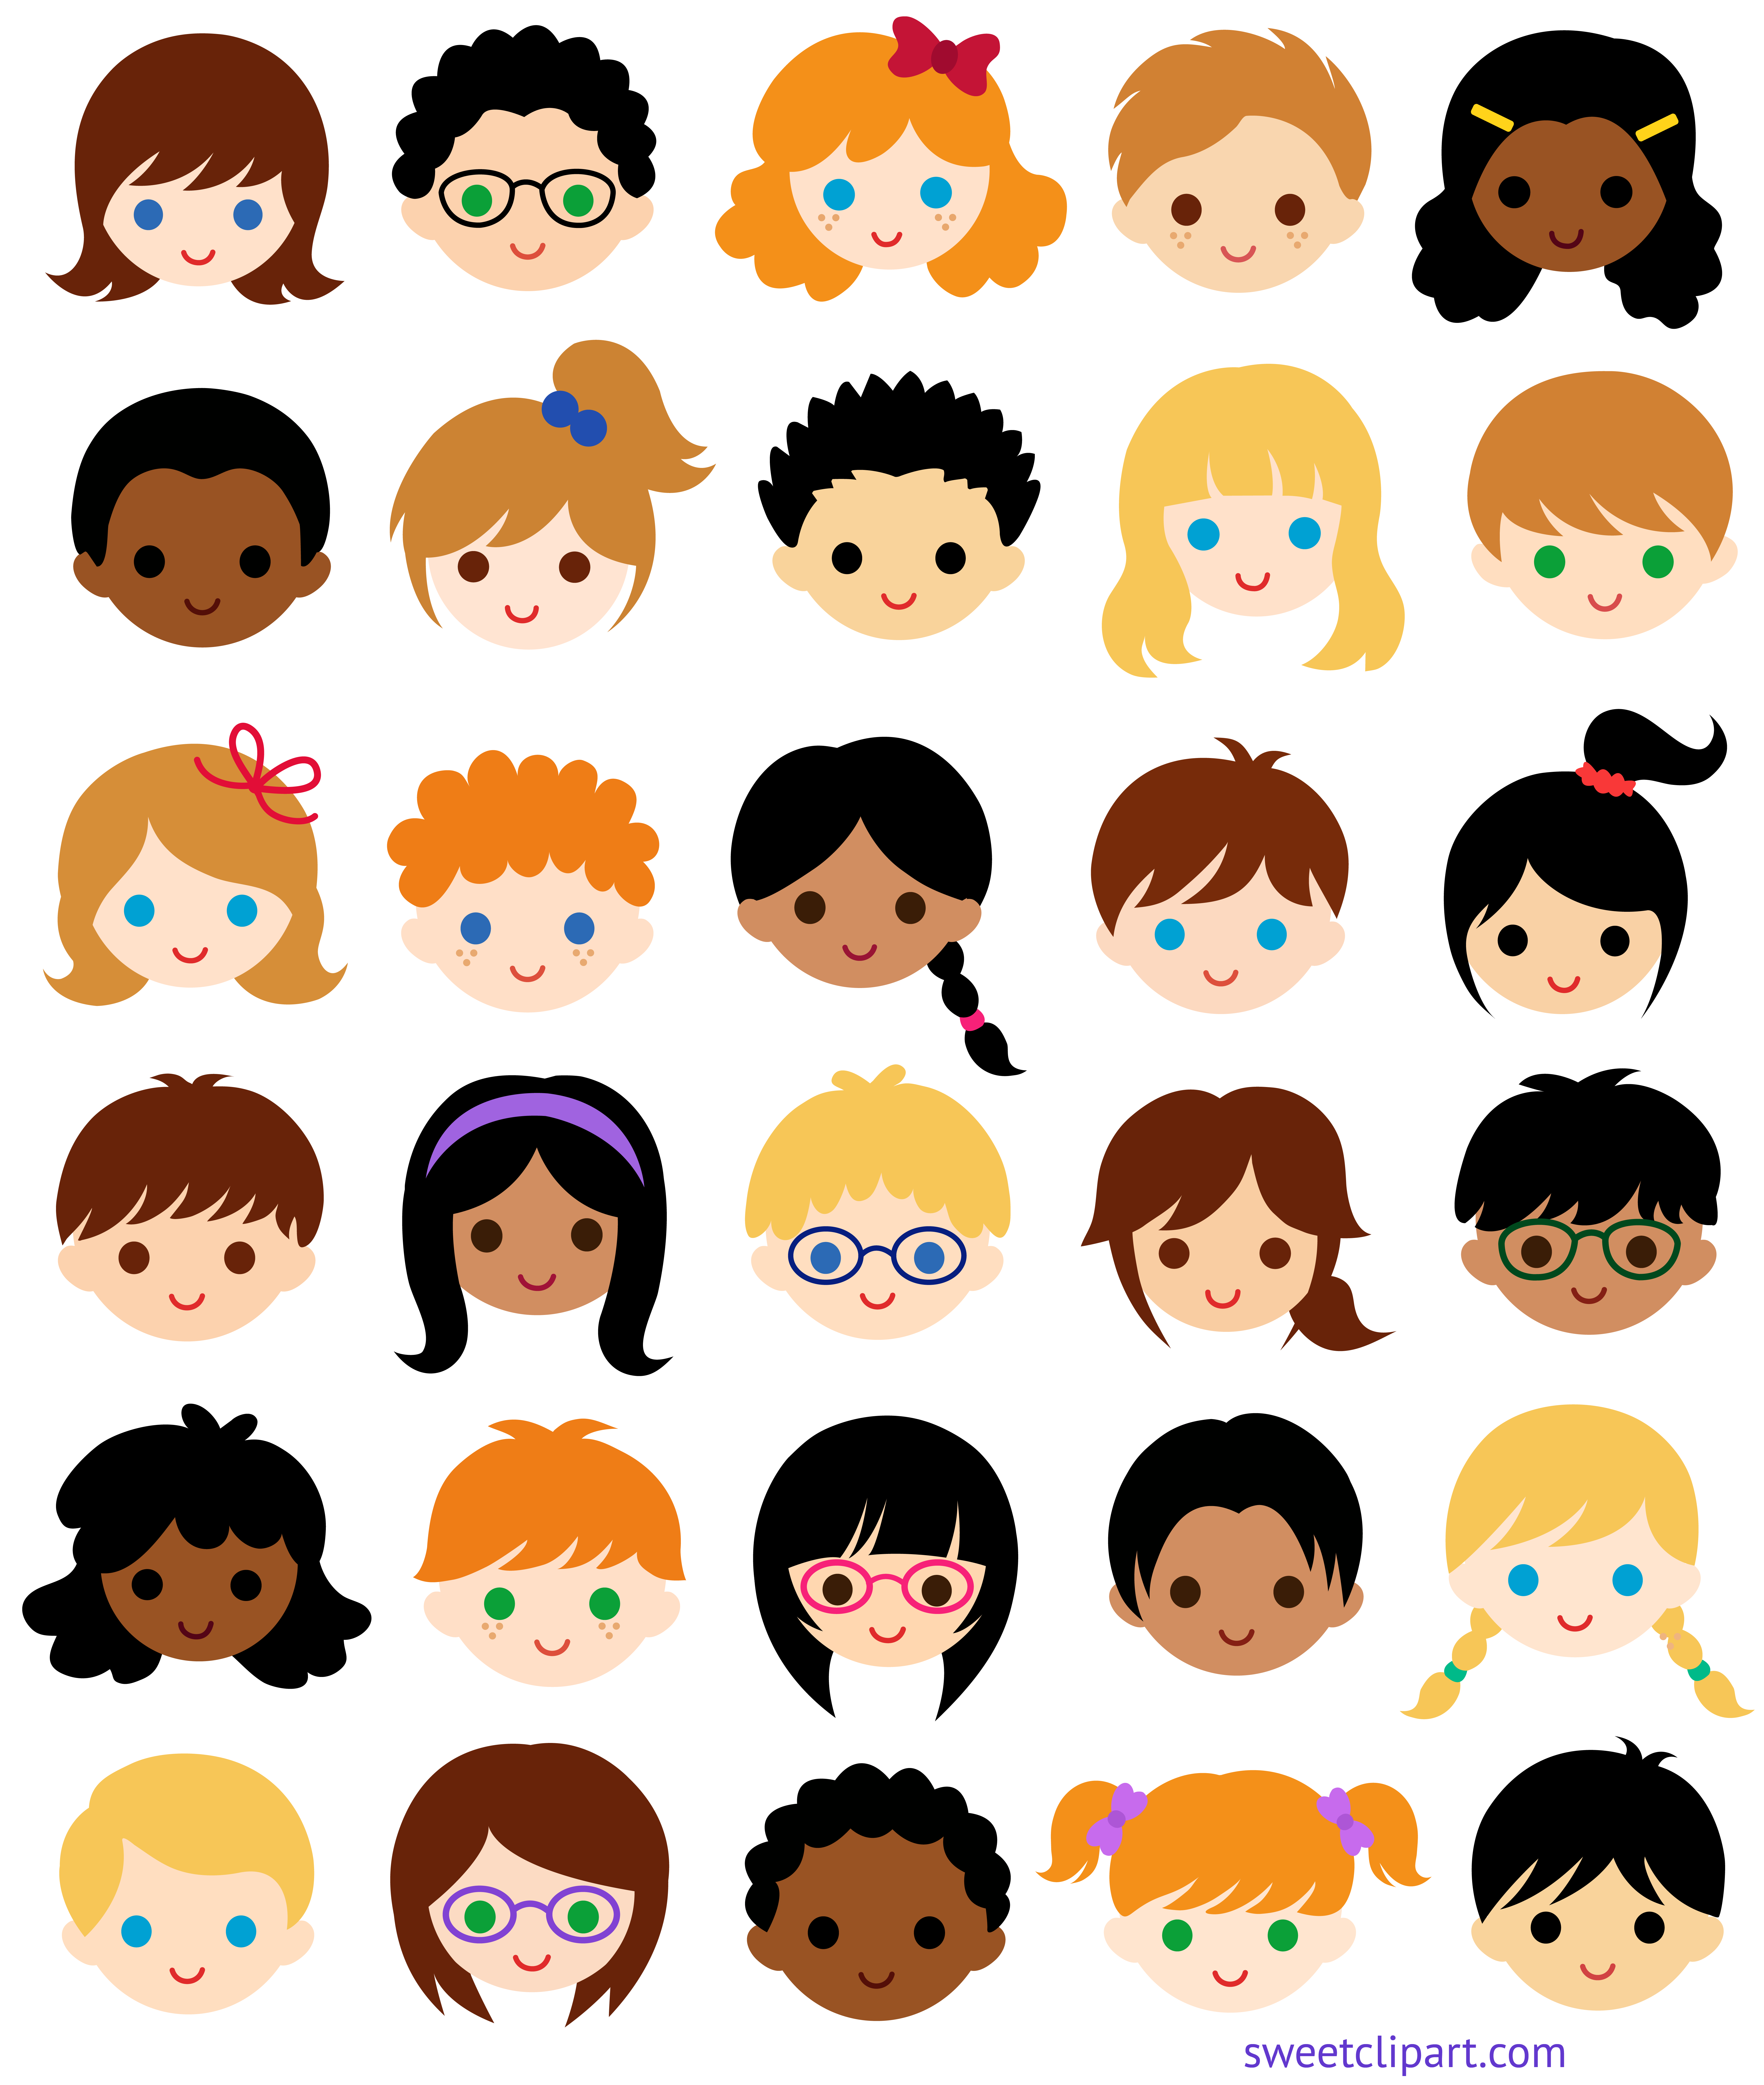 Clipart smile sweet smile. Kids faces classroom clip